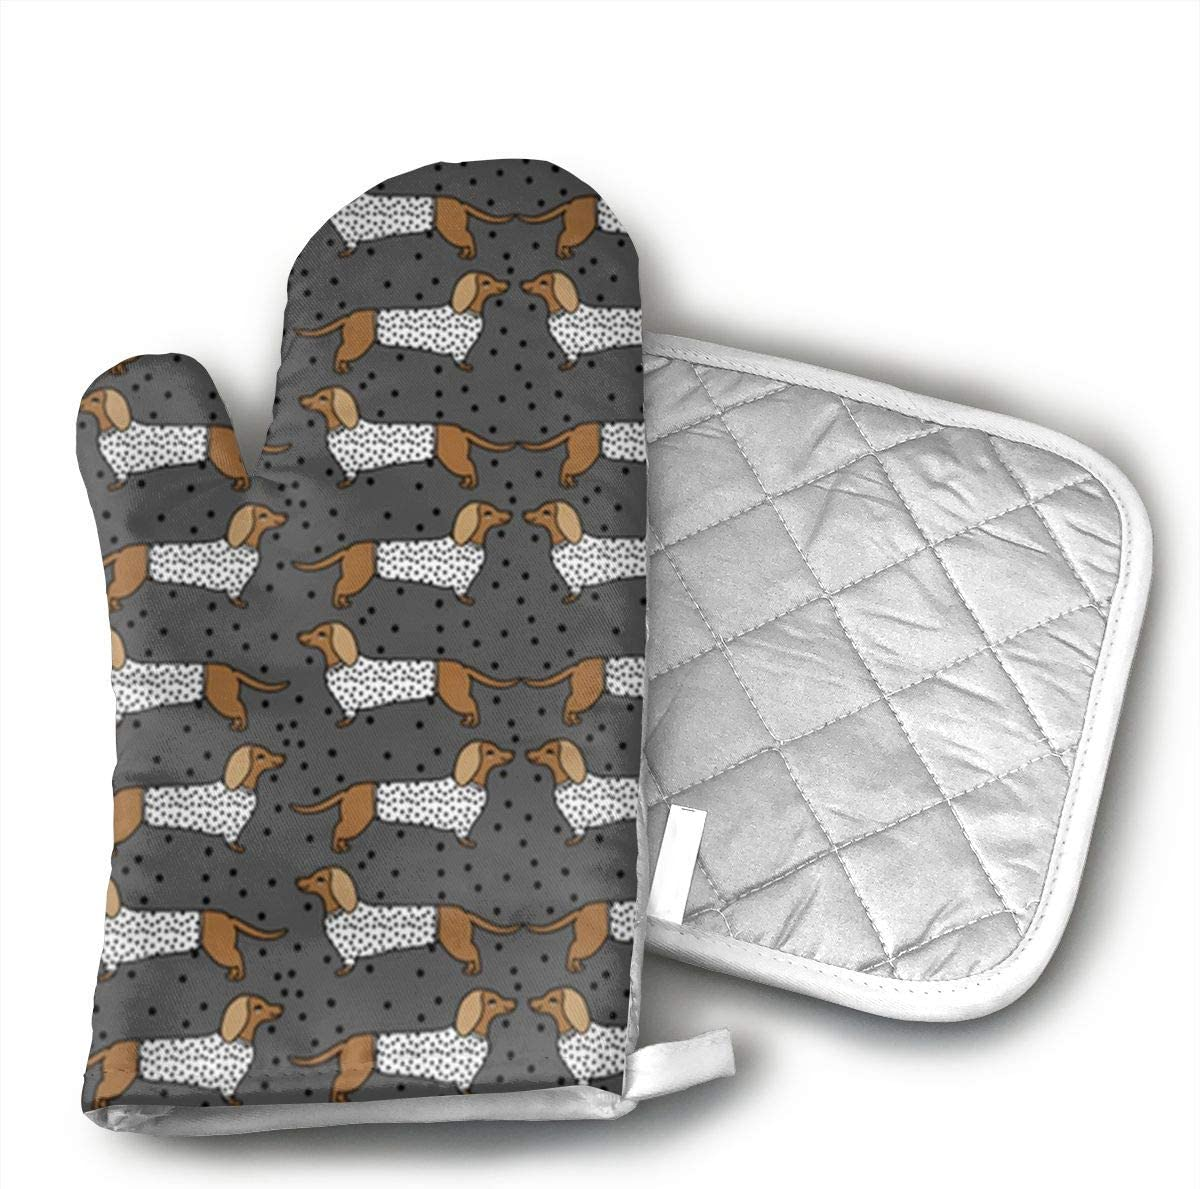 JFNNRUOP Wiener Dog Oven Mitts,with Potholders Oven Gloves,Insulated Quilted Cotton Potholders